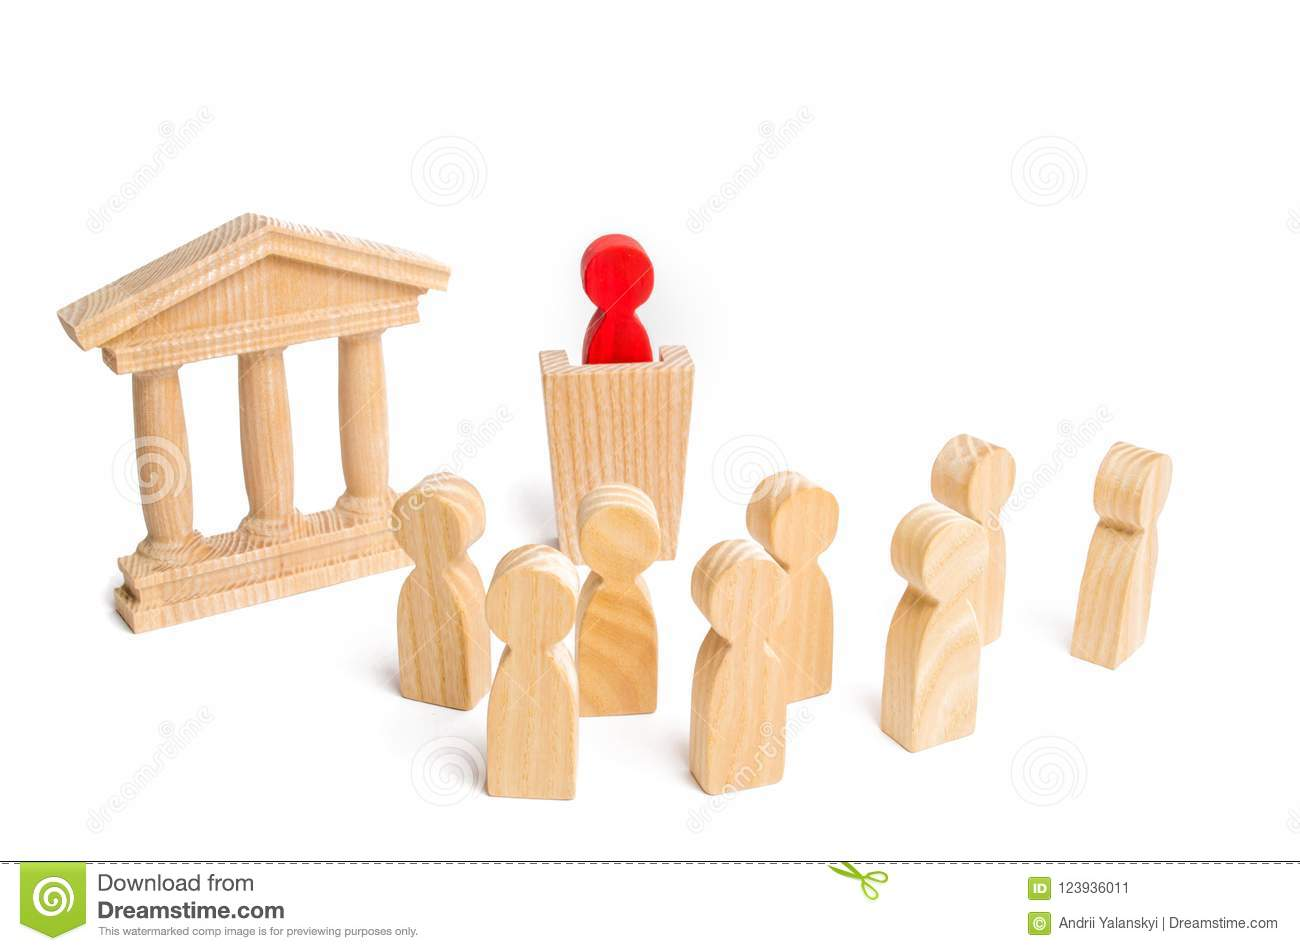 The leader from the rostrum speaks a speech addressing a crowd of people. Business concept of leader and leadership qualities, cro